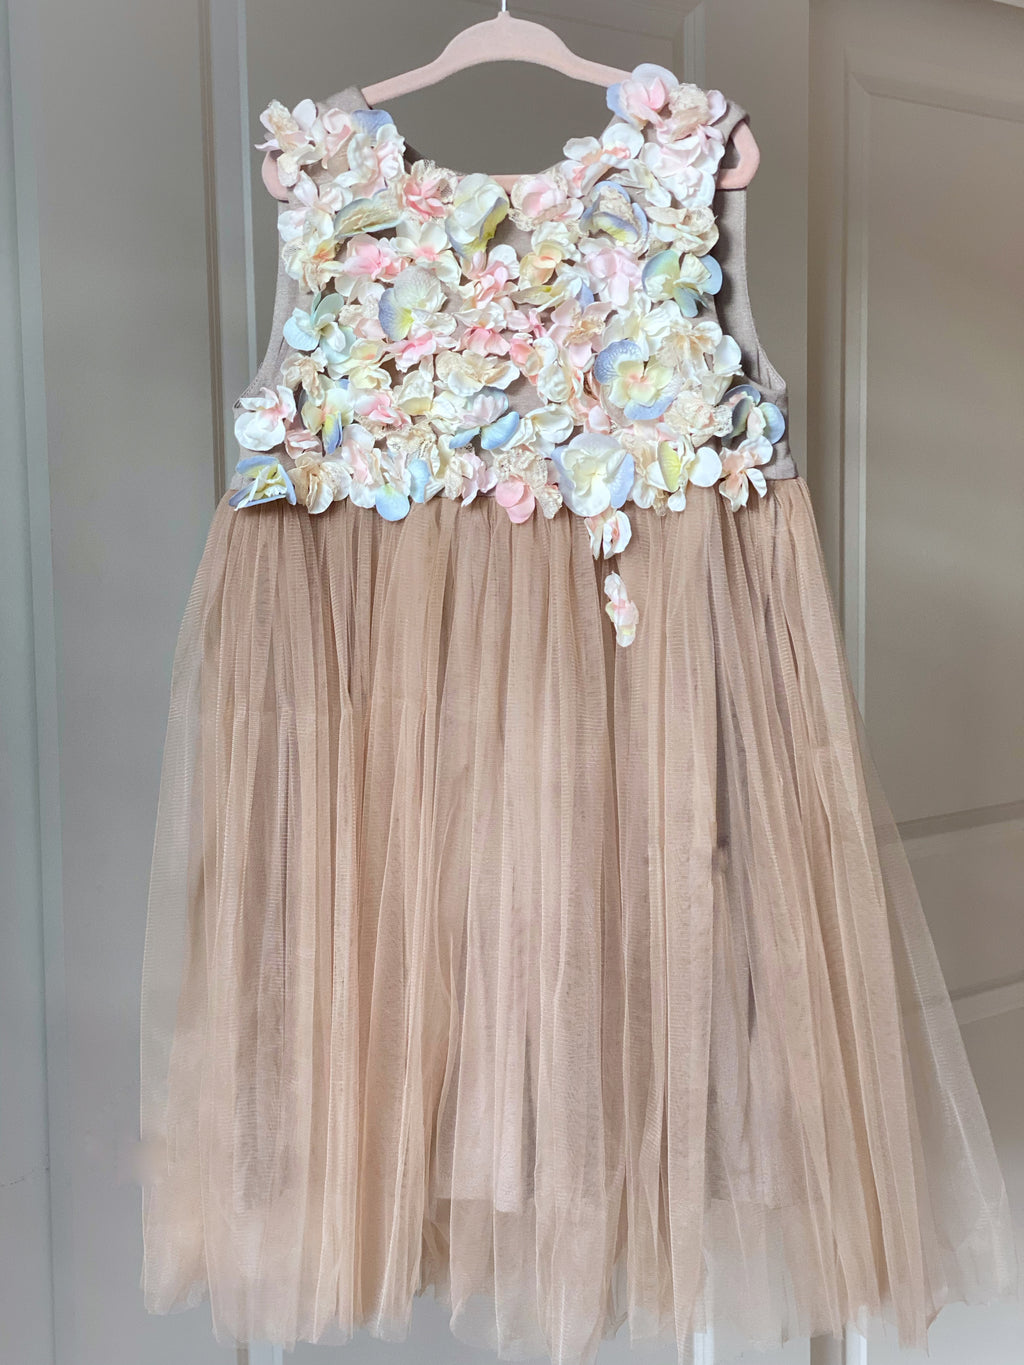 Beige Tulle Dress with Floral Appliques - Flowers and Ruffles